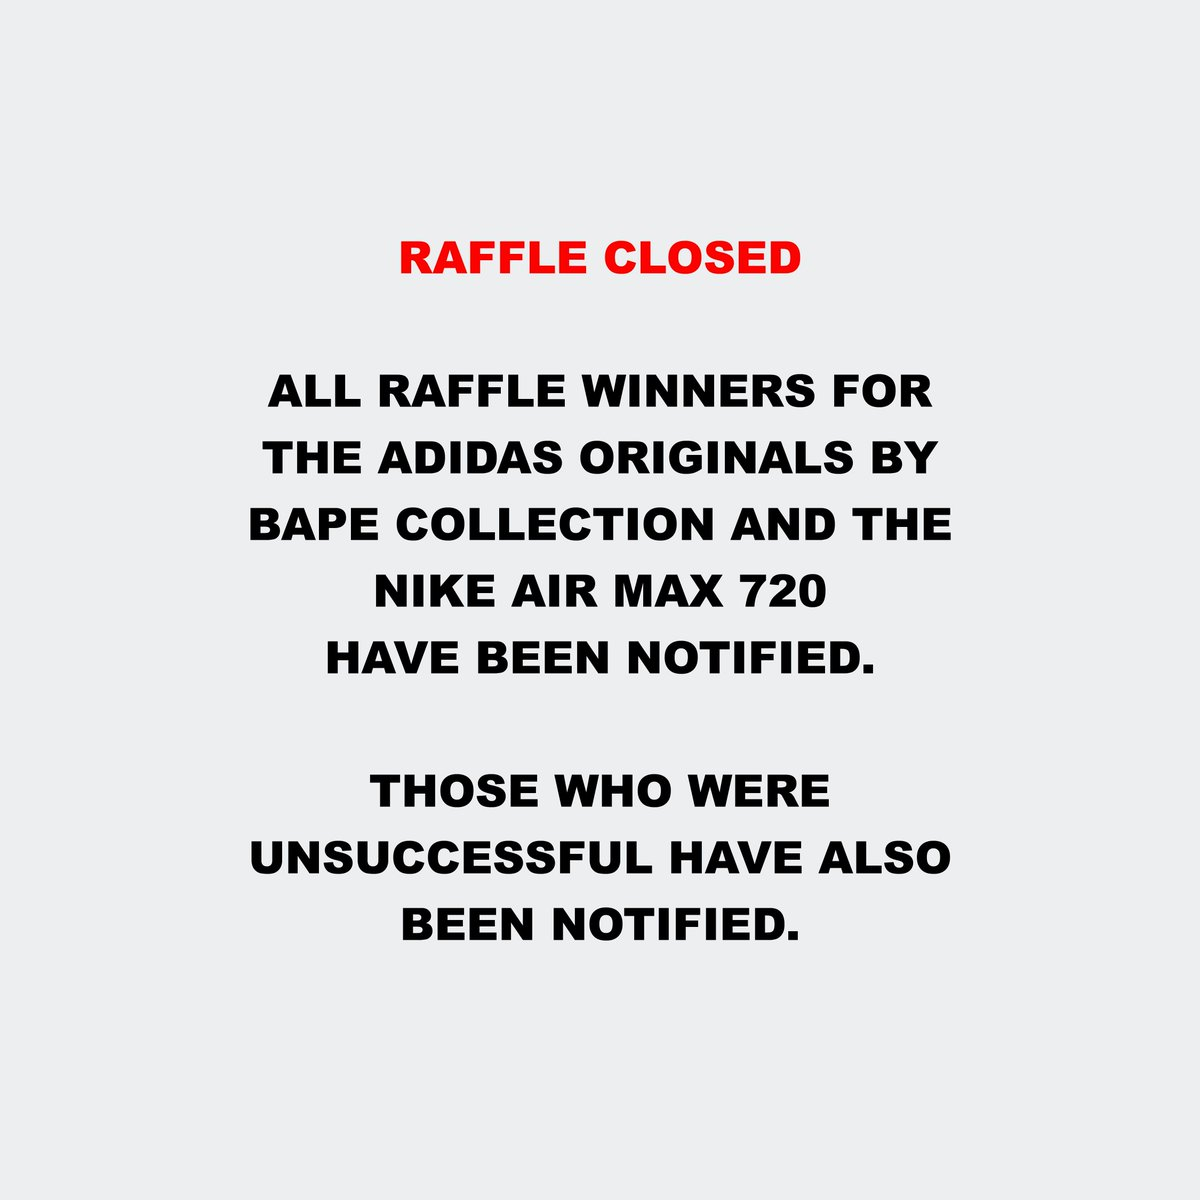 e7ed718d4 Those who were unsuccessful have also been notified.  adidas  bape  nike   airmax720  hanonpic.twitter.com MuebYvHVDc